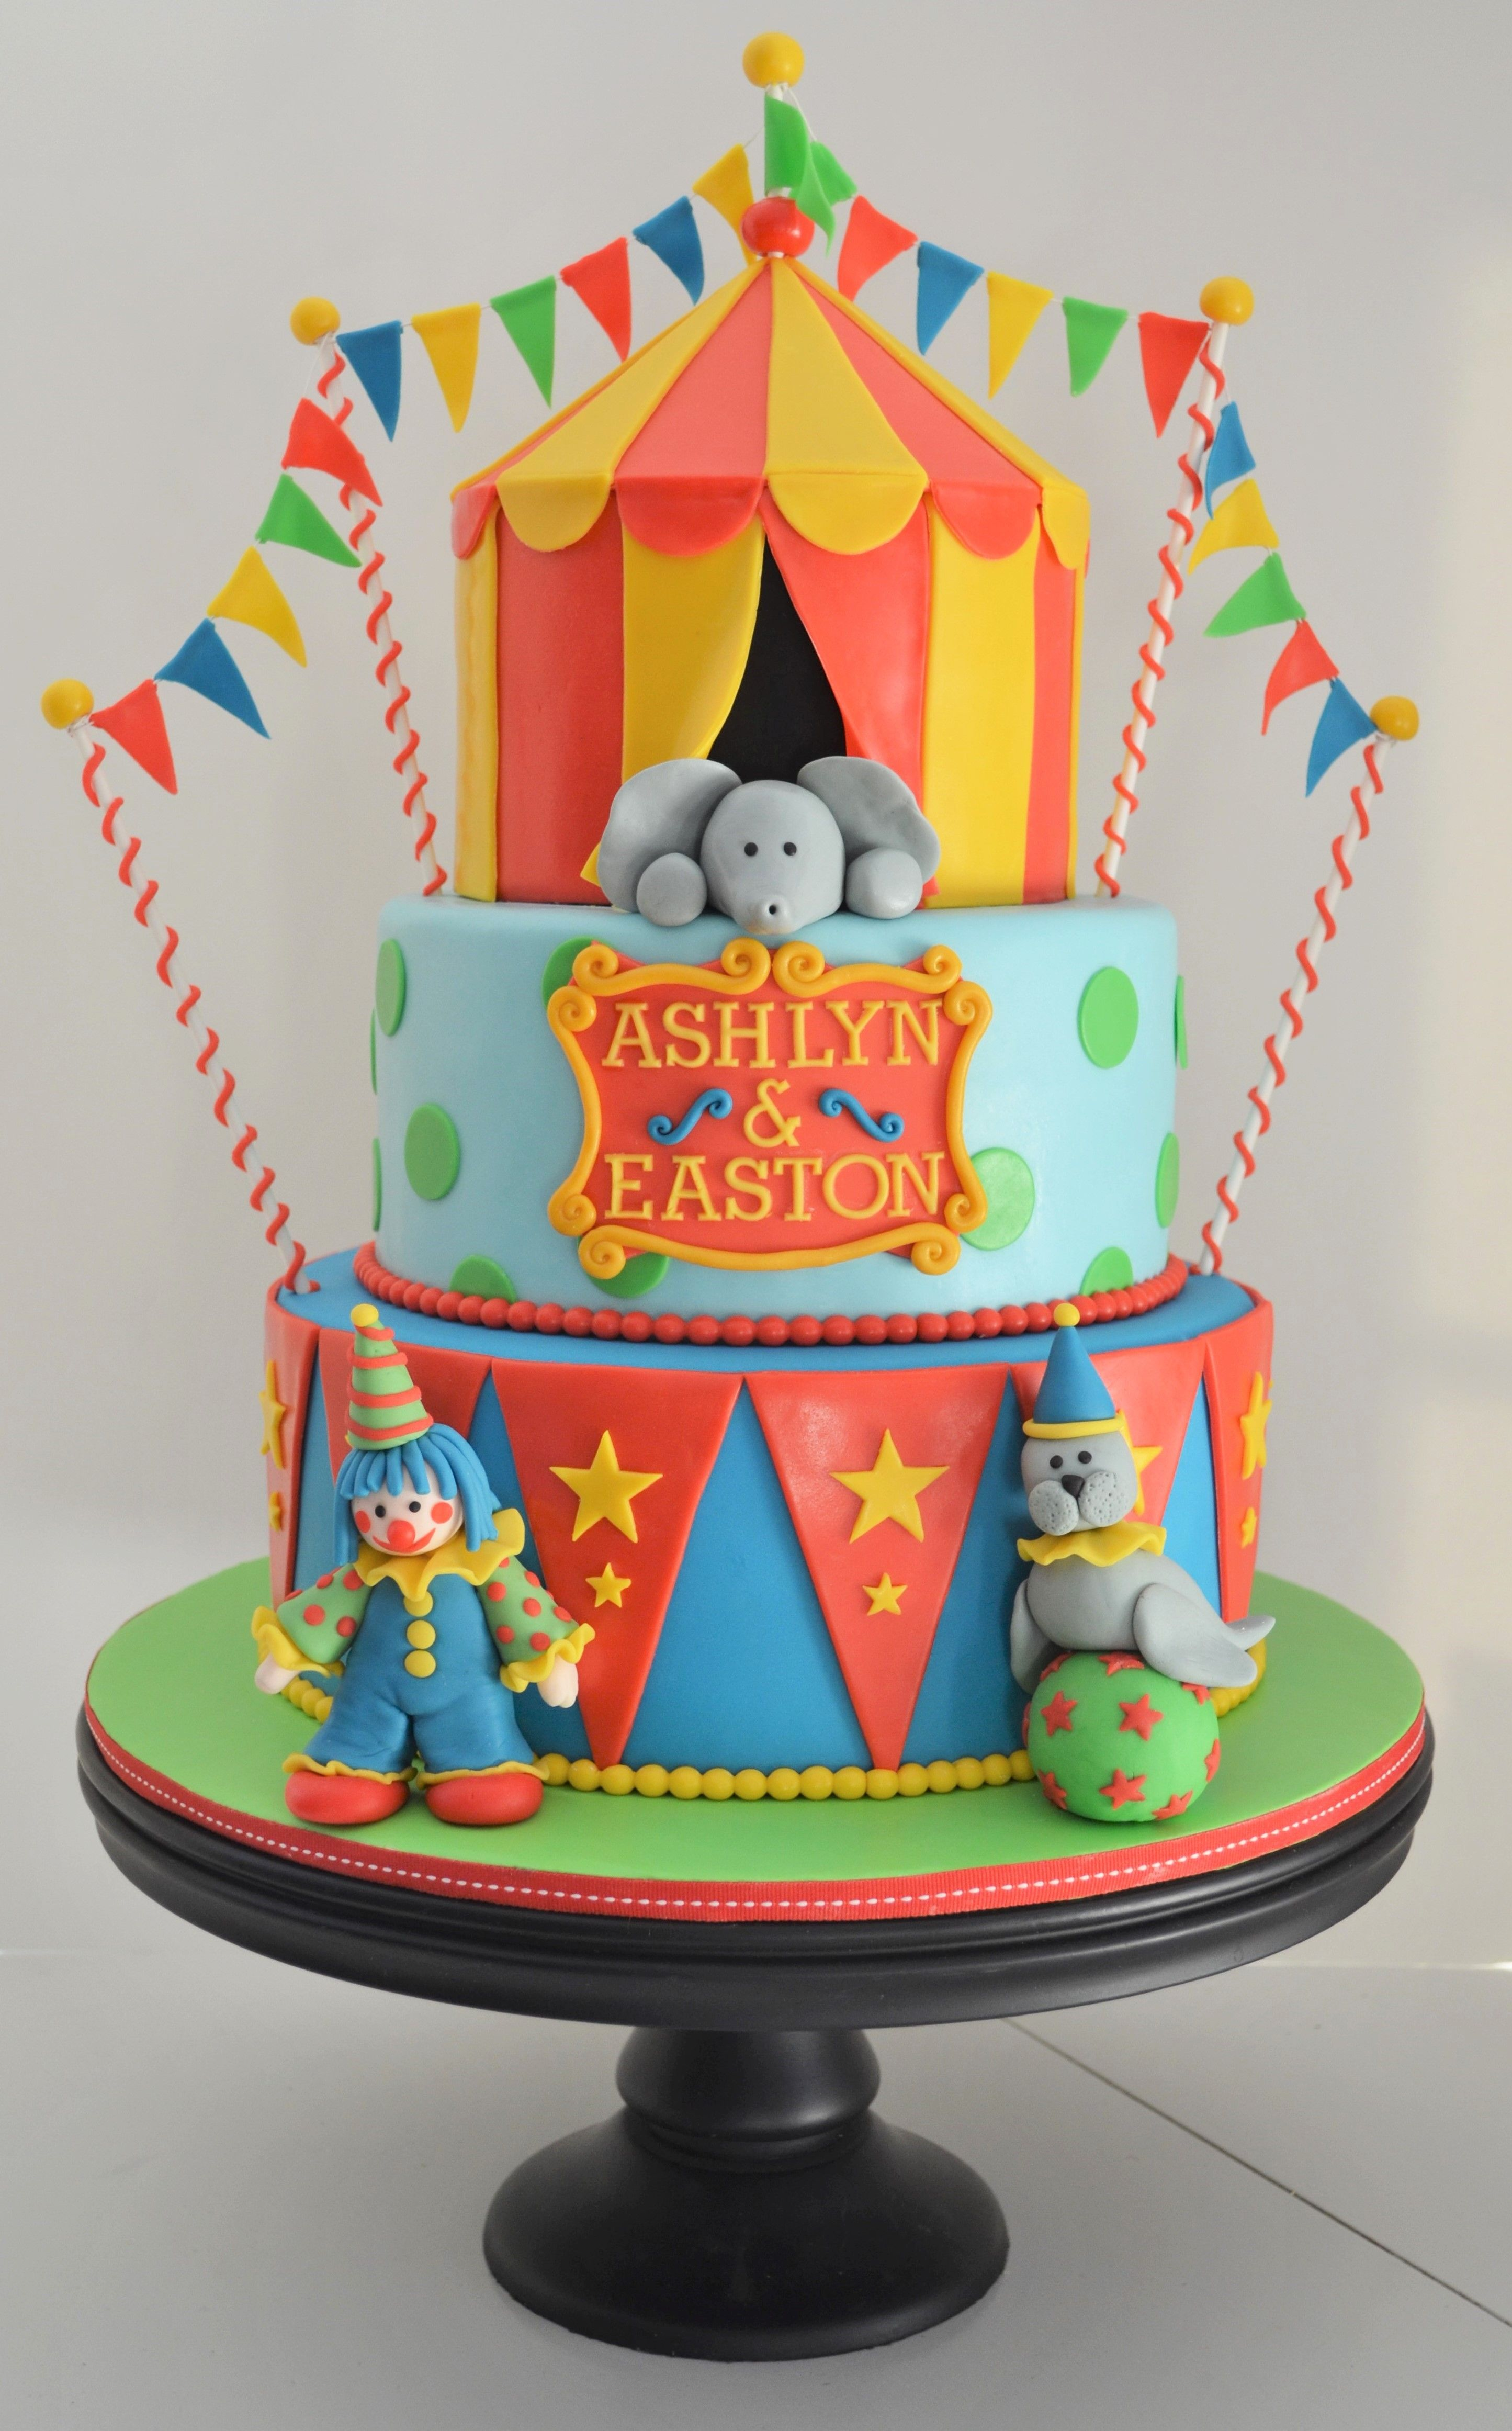 Incredible Circus Birthday Cake Pasteles De Cumpleanos De Circo Tartas De Personalised Birthday Cards Cominlily Jamesorg